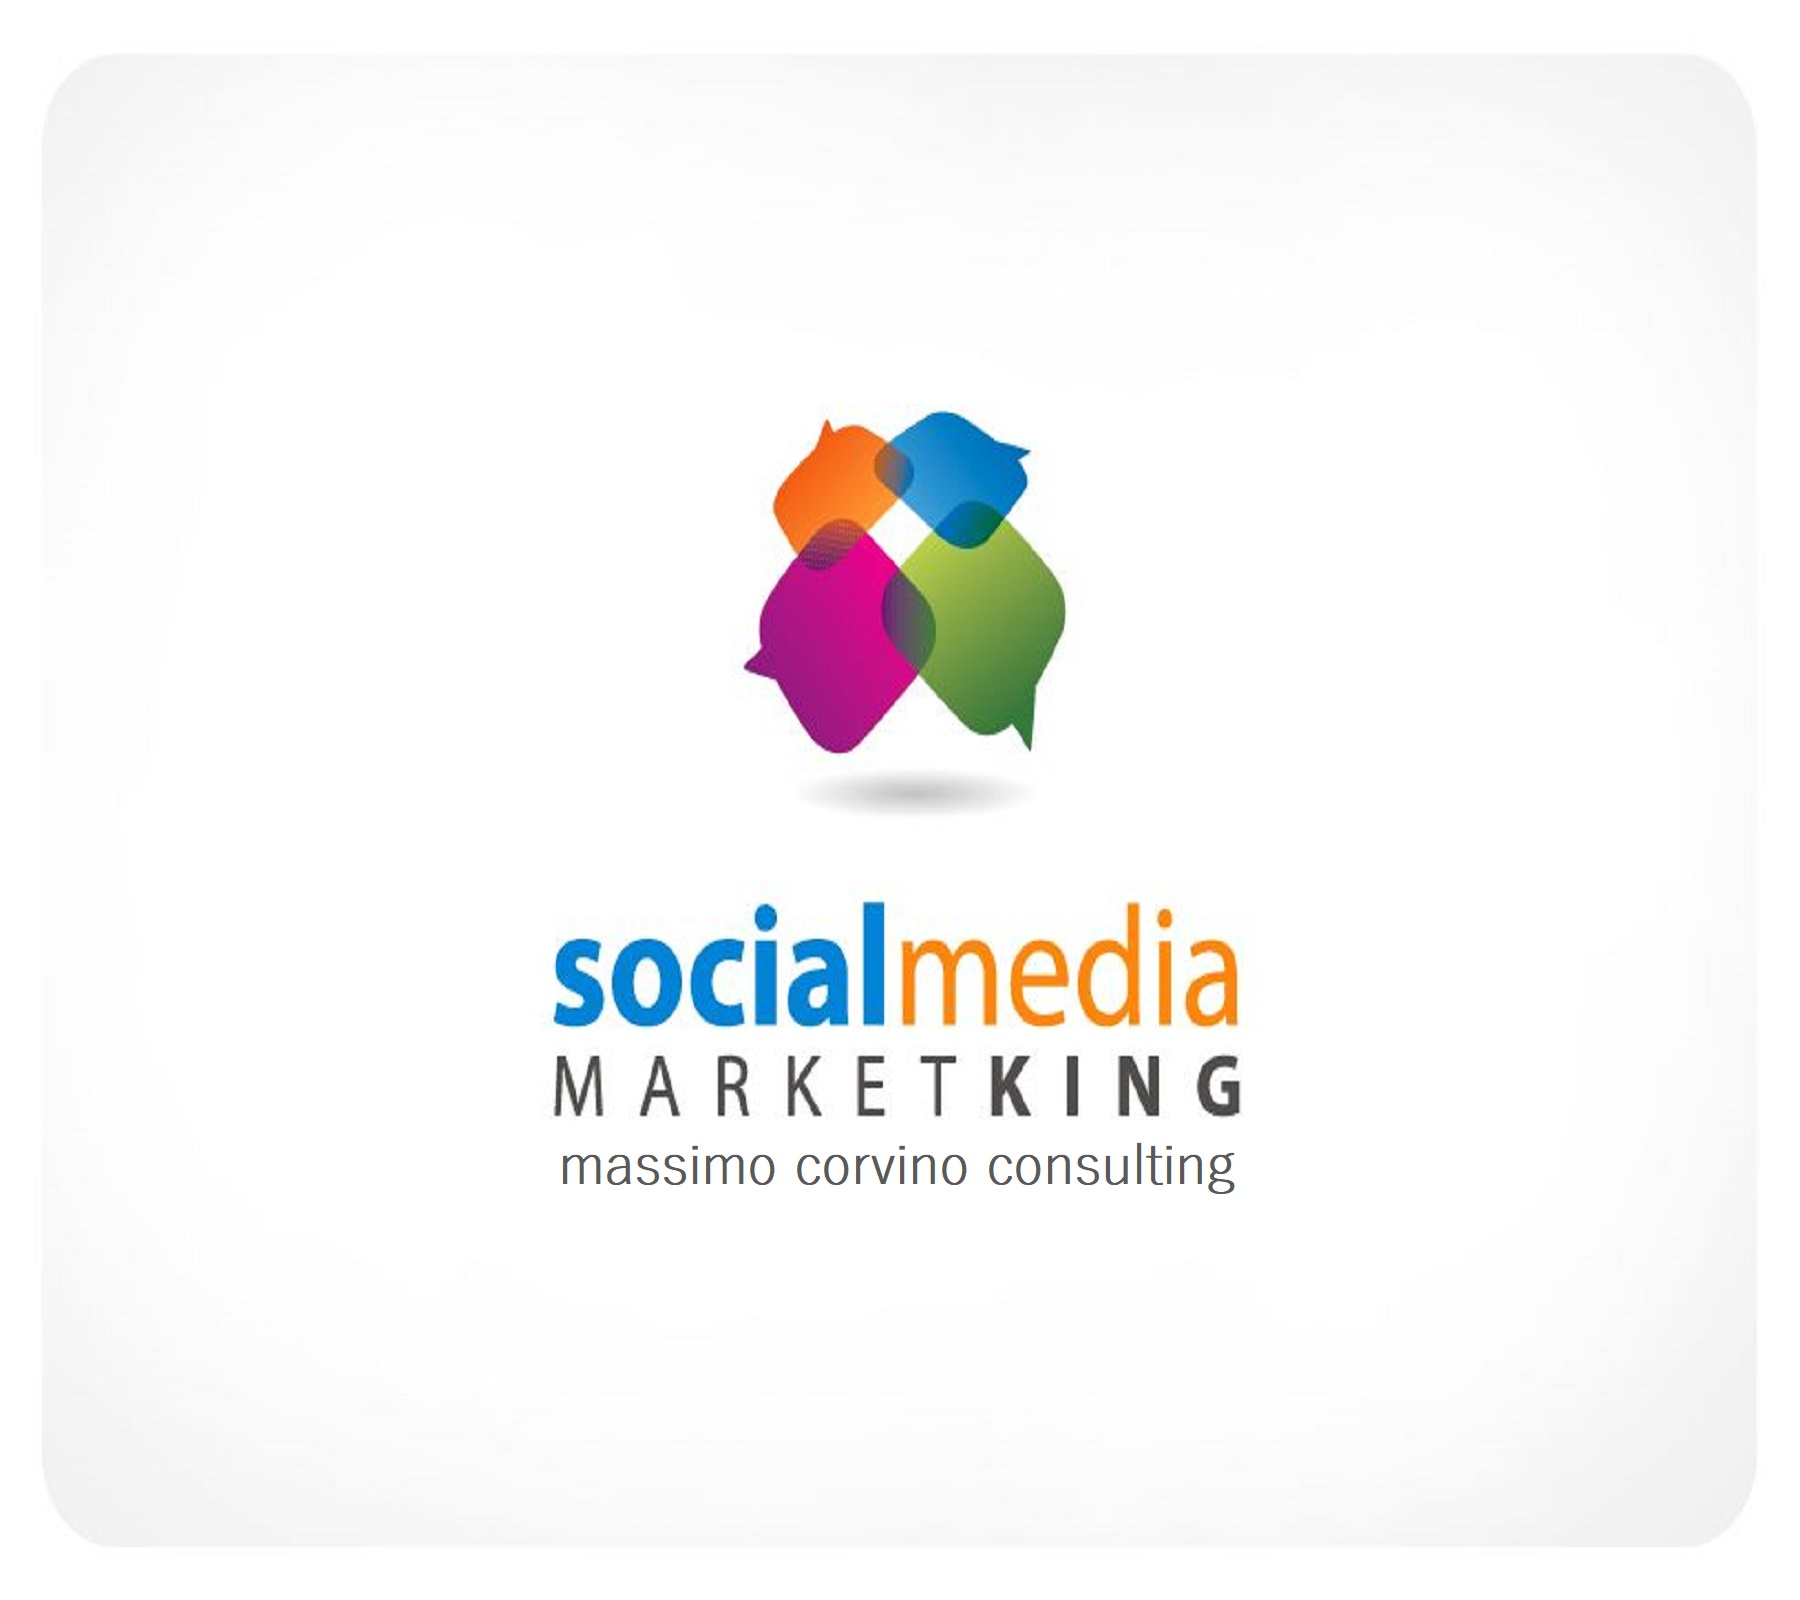 Massimo Corvino Consulting - Social Media Marketing